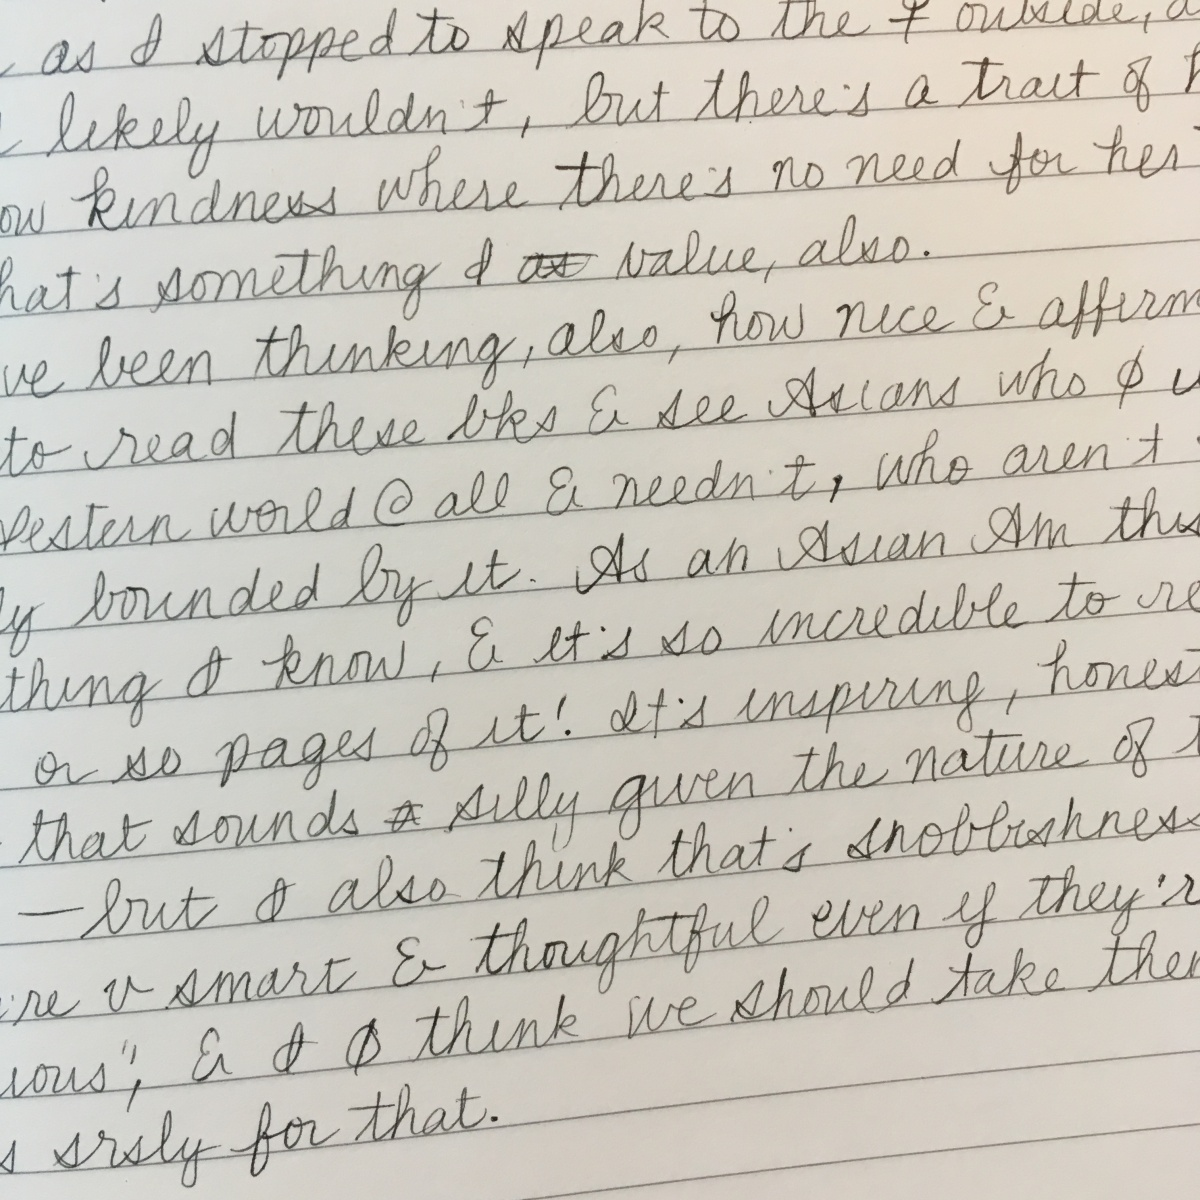 Handwritten journal entry on ruled paper